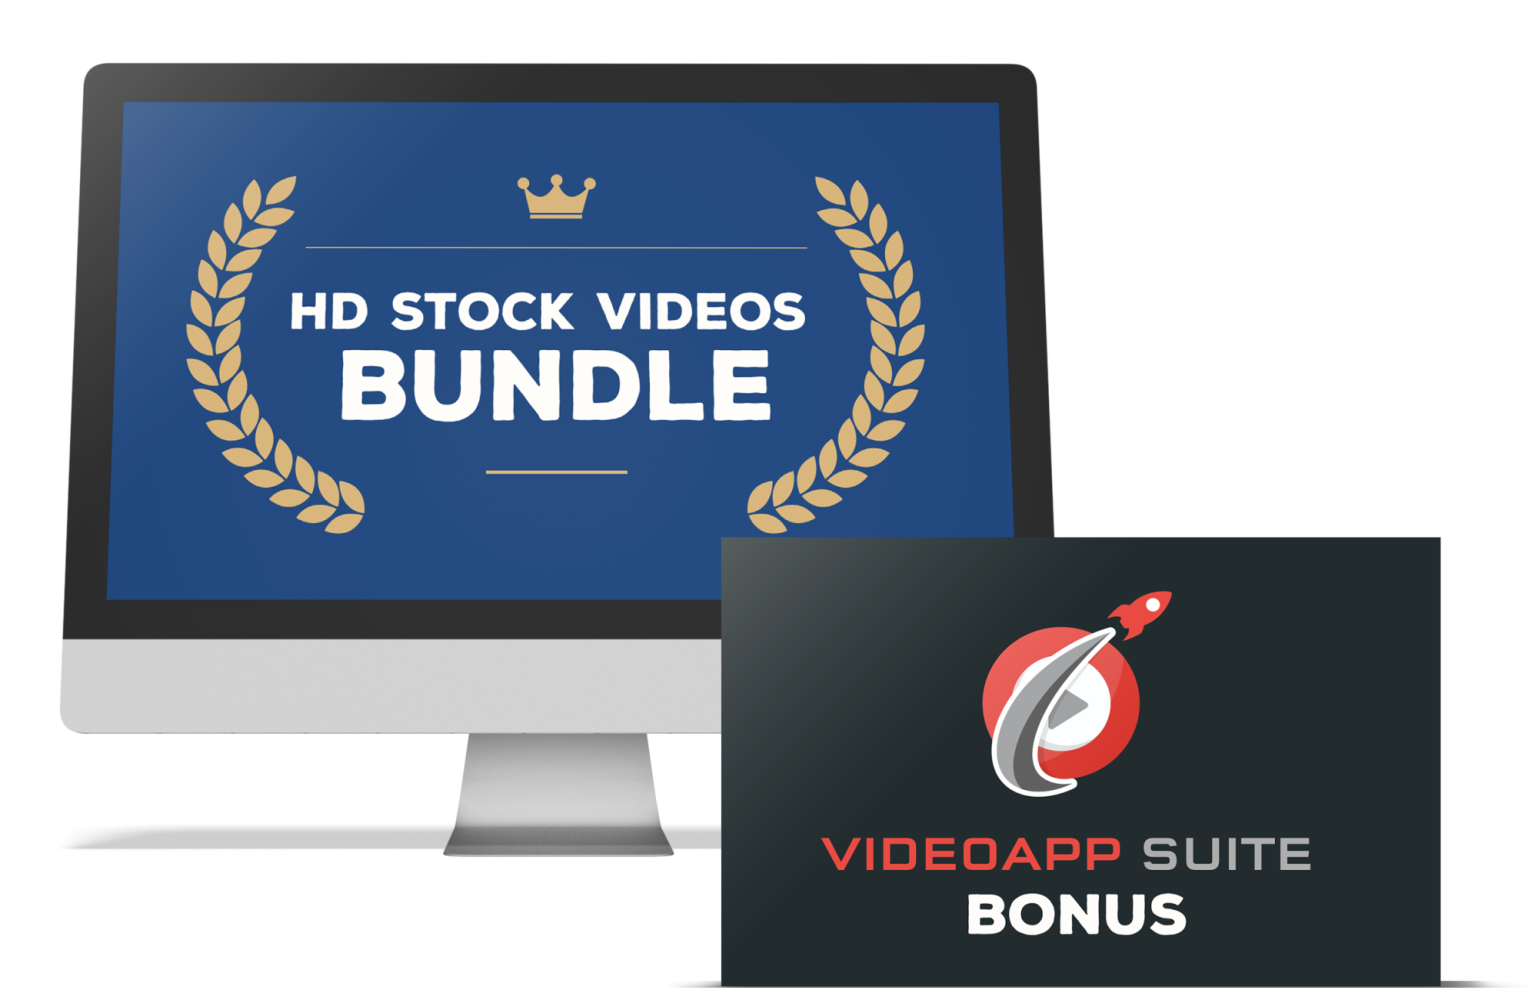 HD Stock Video Bundle